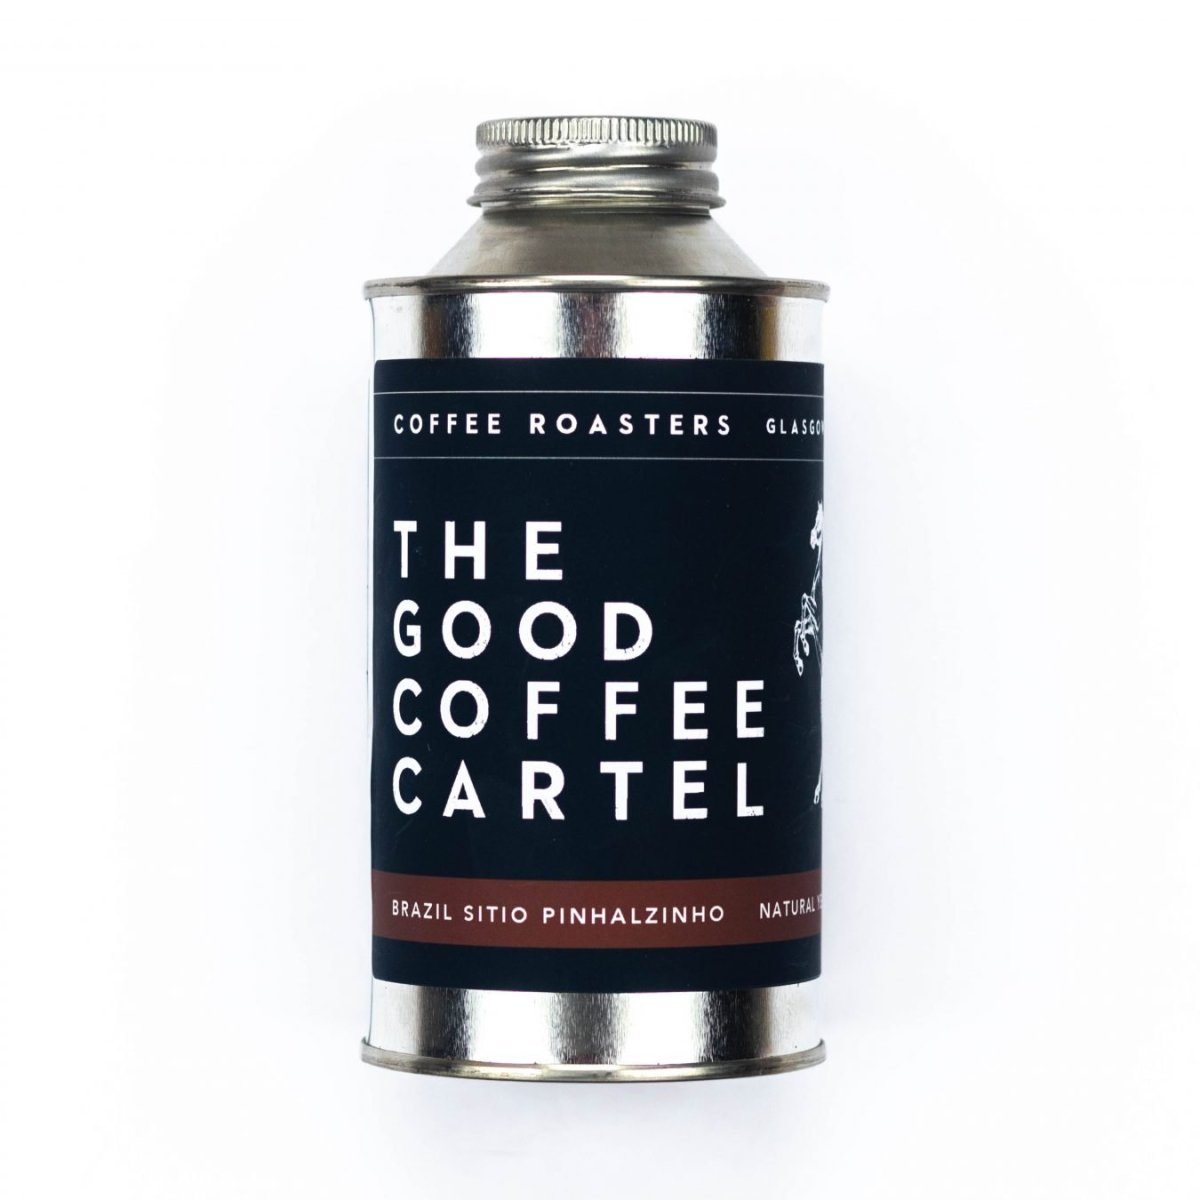 Tin of coffee from The Good Coffee Cartel